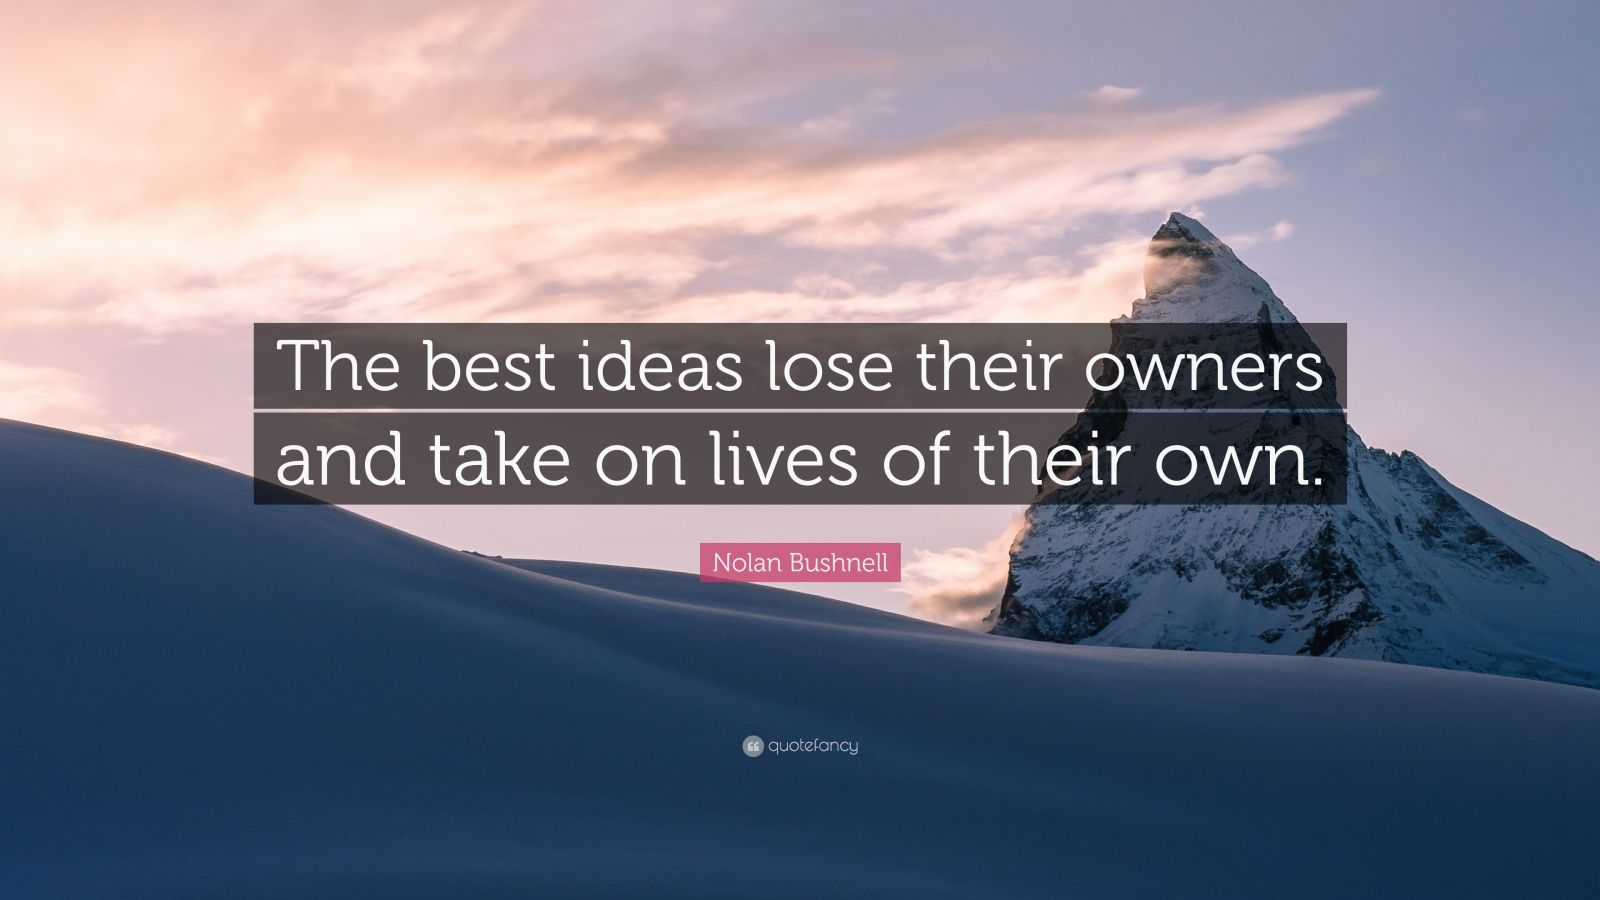 """Nolan Bushnell Quote: """"The best ideas lose their owners and take on lives of their own."""""""